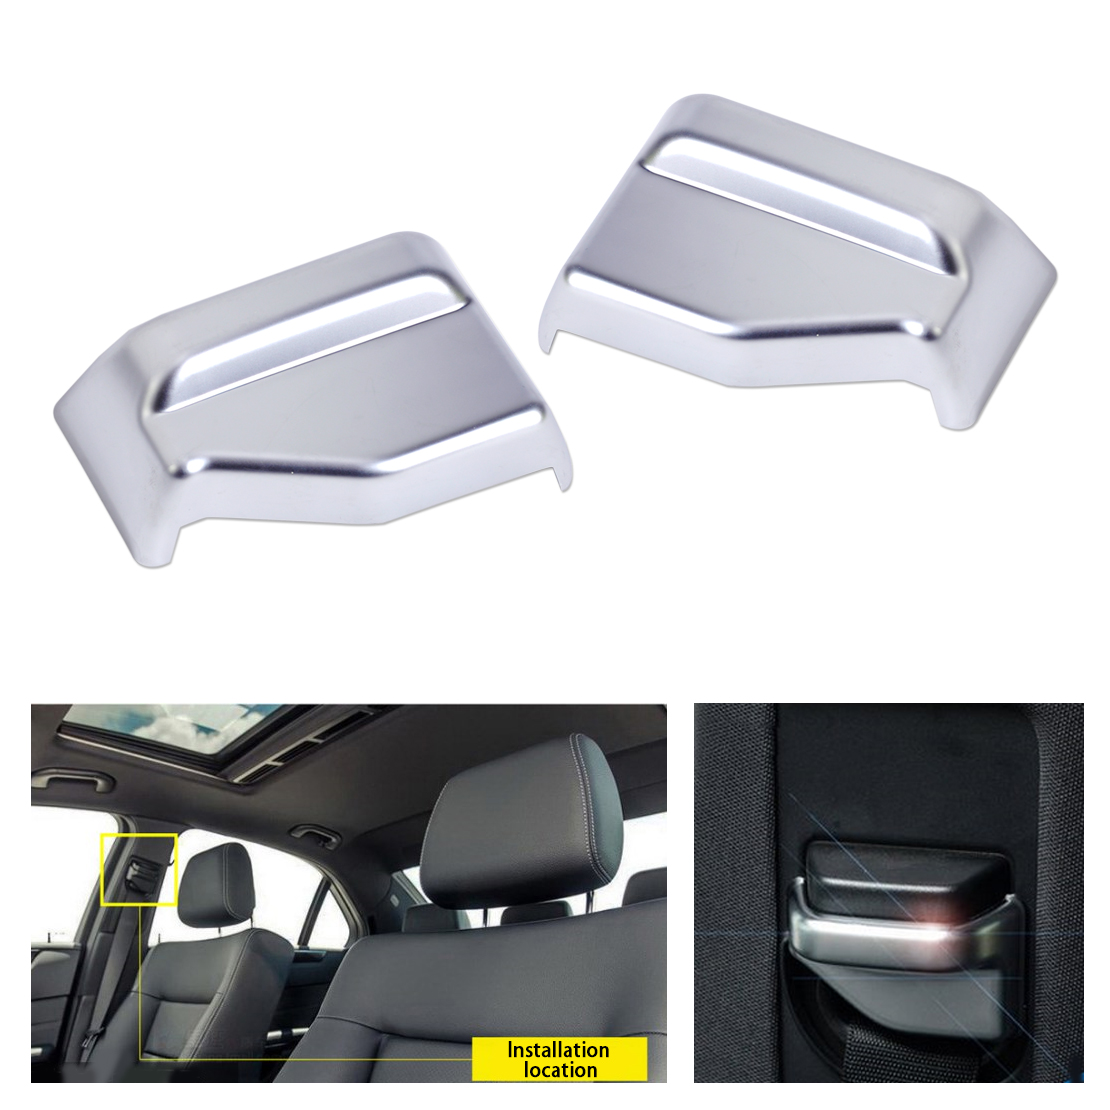 beler 2x ABS Chrome Interior B Pillar Seat Safety Belt Frame Cover Trim for Mercedes Benz E Class W212 2010-2012 2013 2014 2015 dhl shipping 23pc x error free led interior light kit for mercedes for mercedes benz e class w212 e350 e400 e550 e63amg 09 15